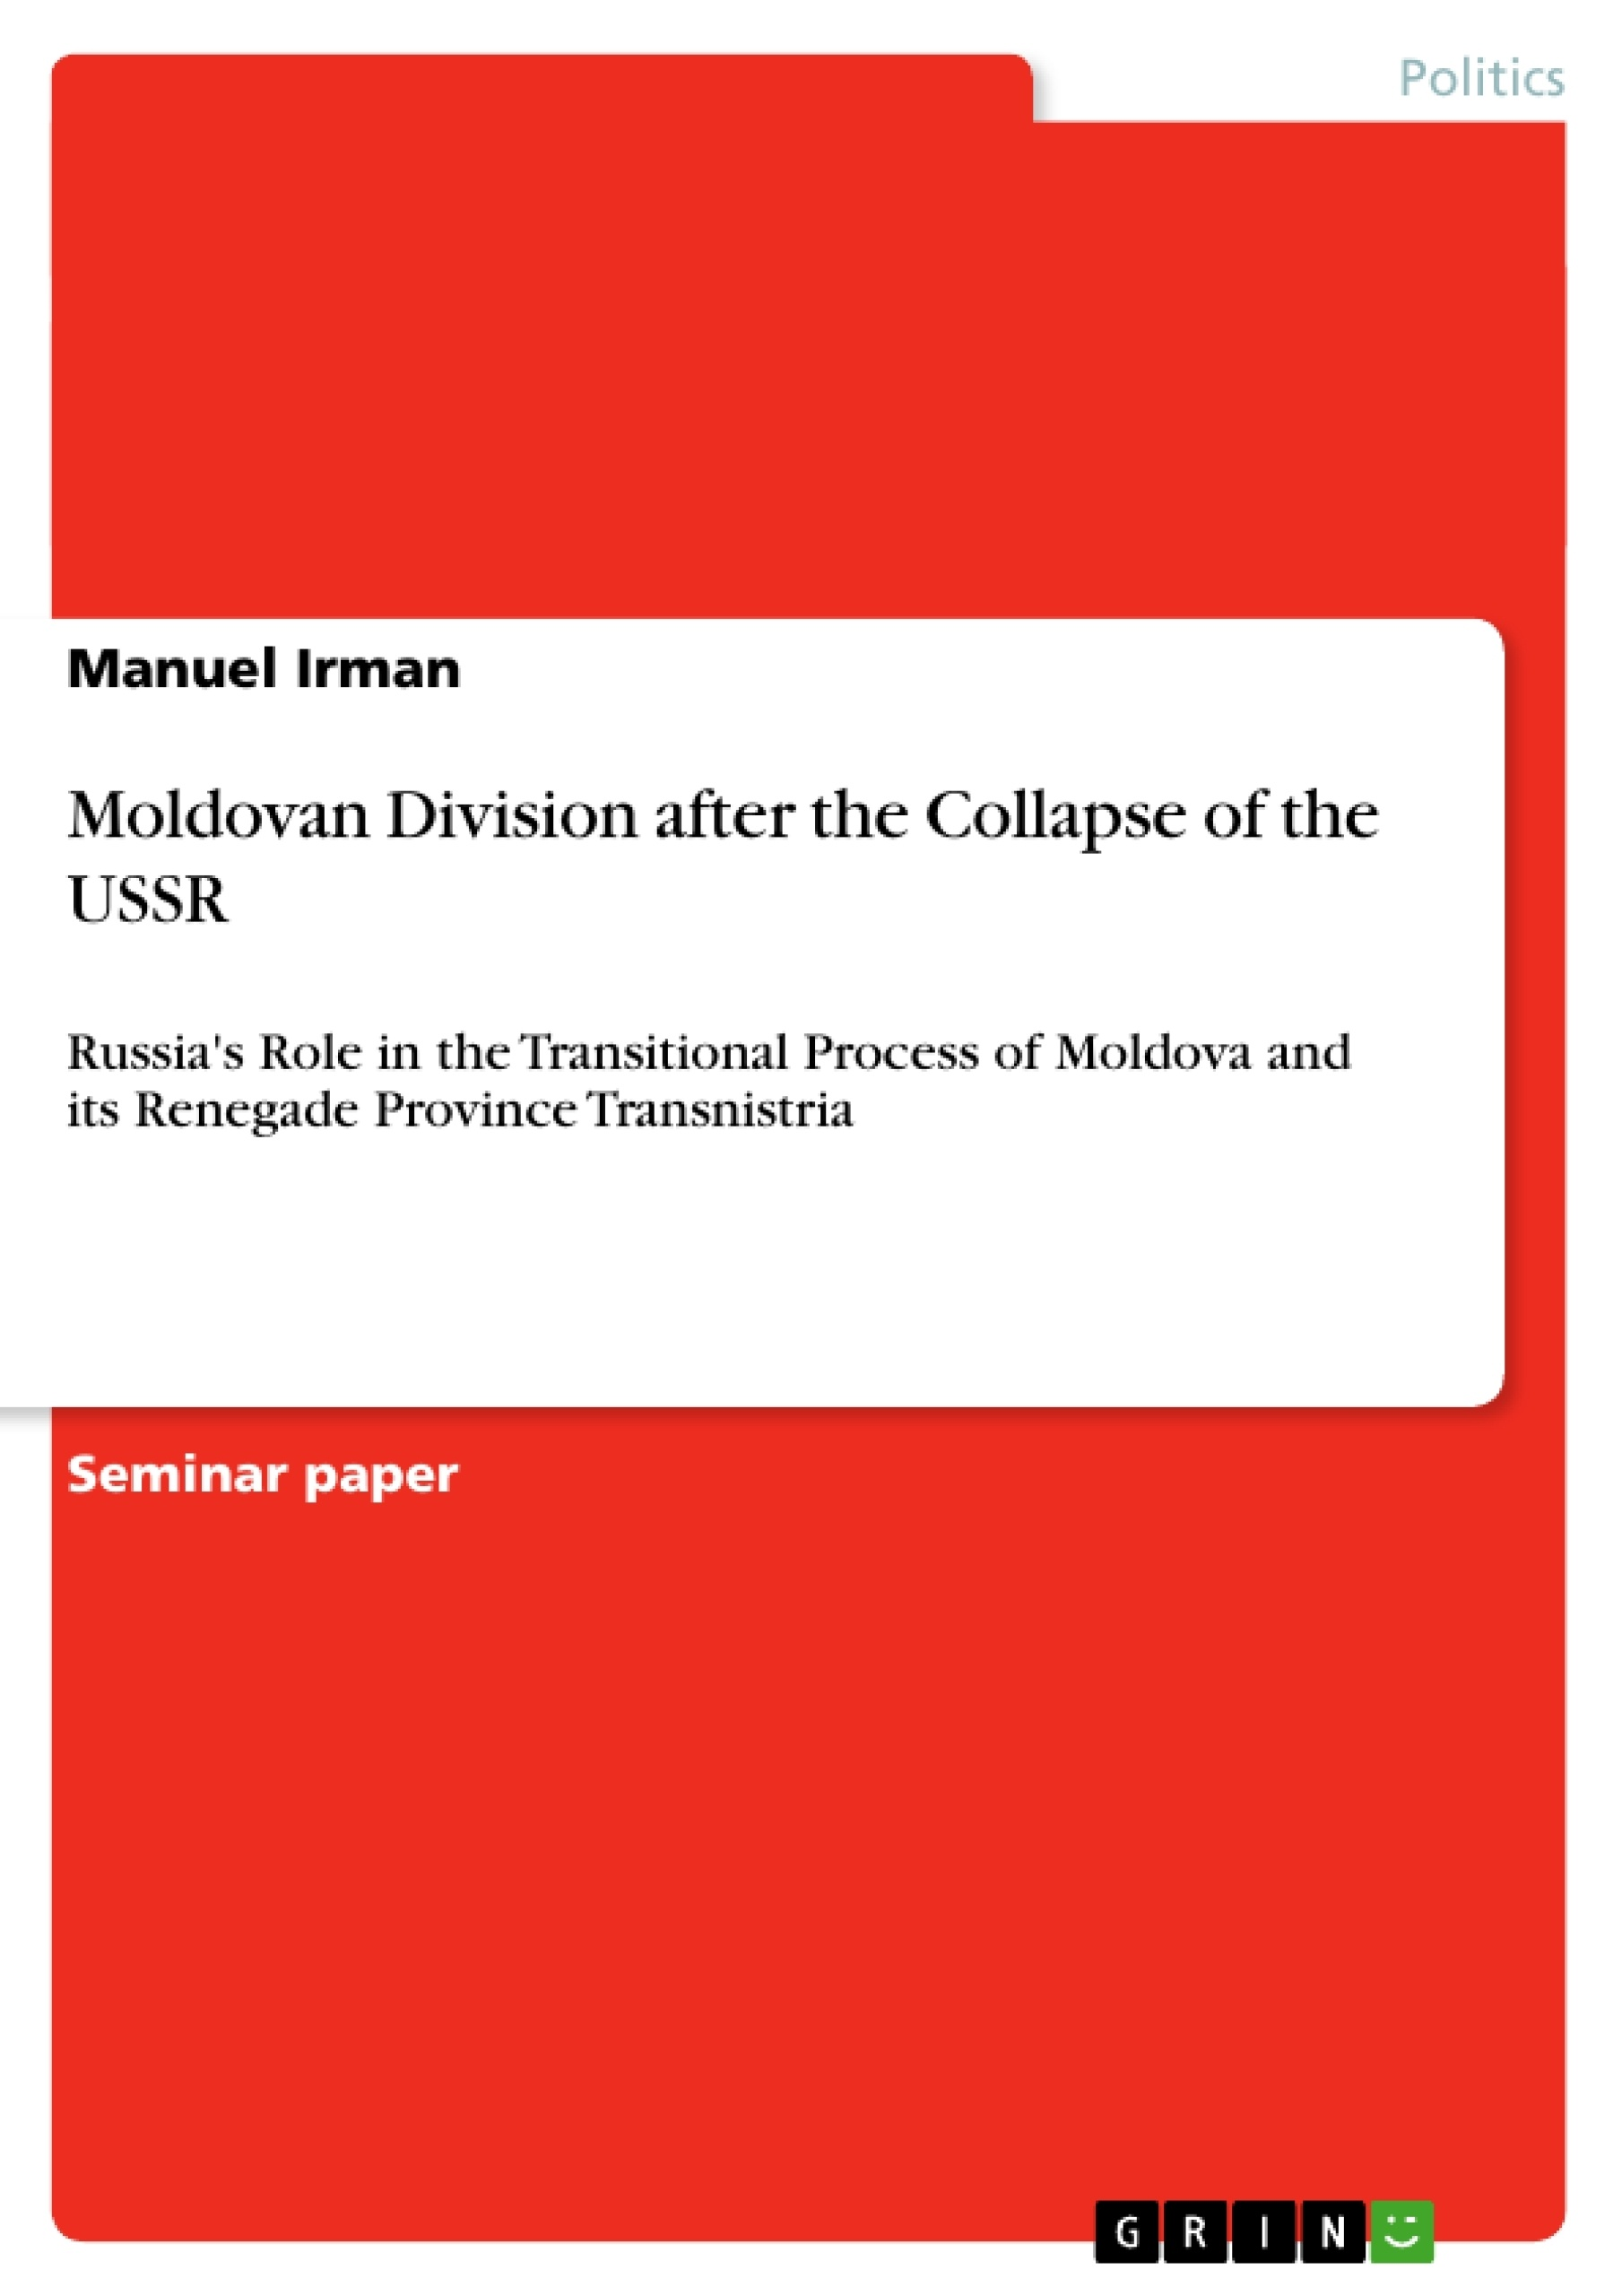 Title: Moldovan Division after the Collapse of the USSR